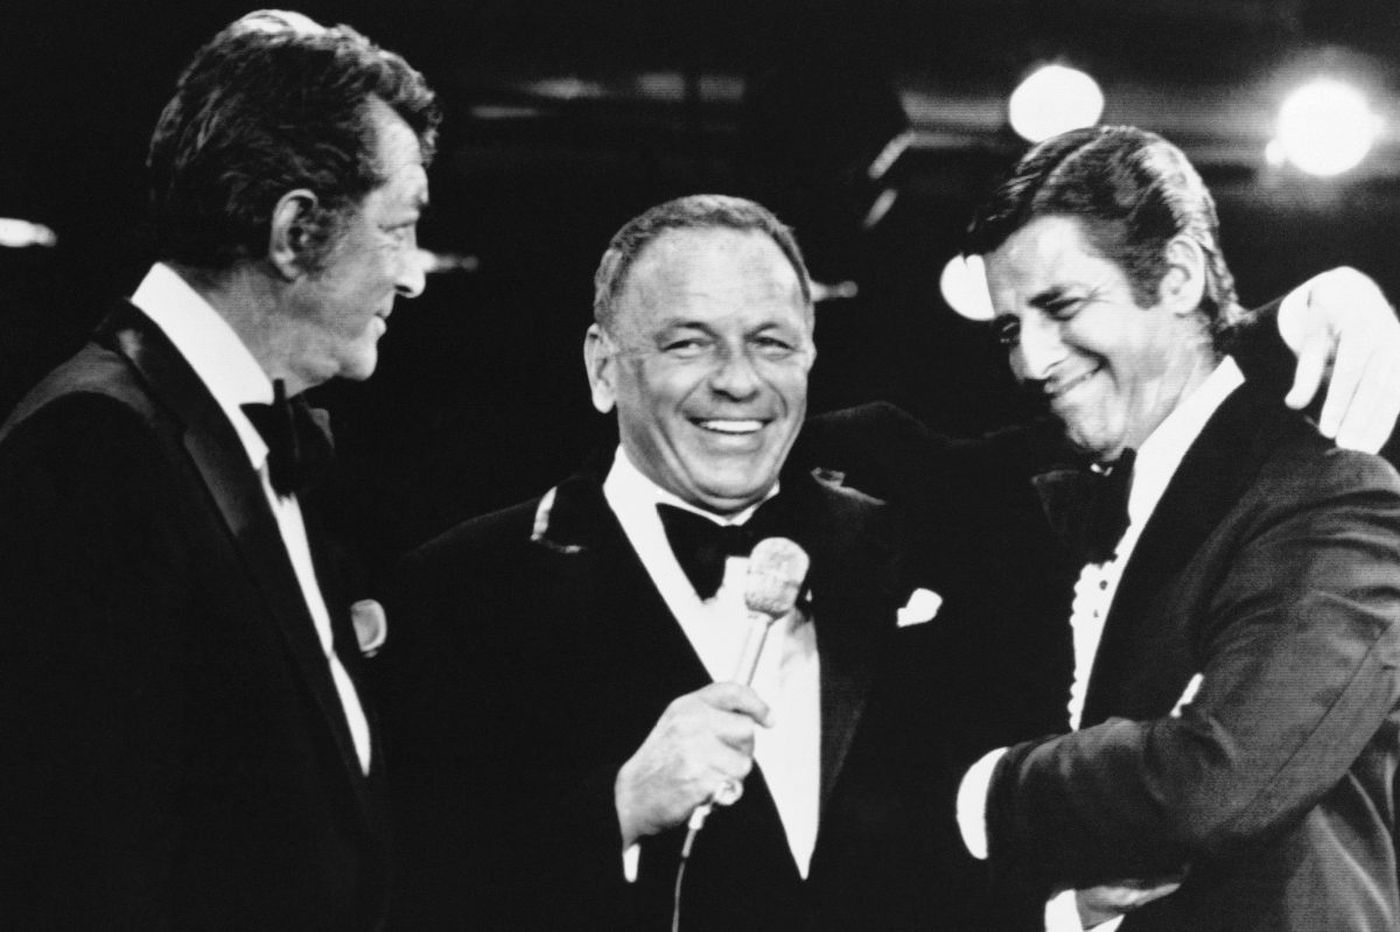 Jerry Lewis and the Telethon, raising billions for his kids